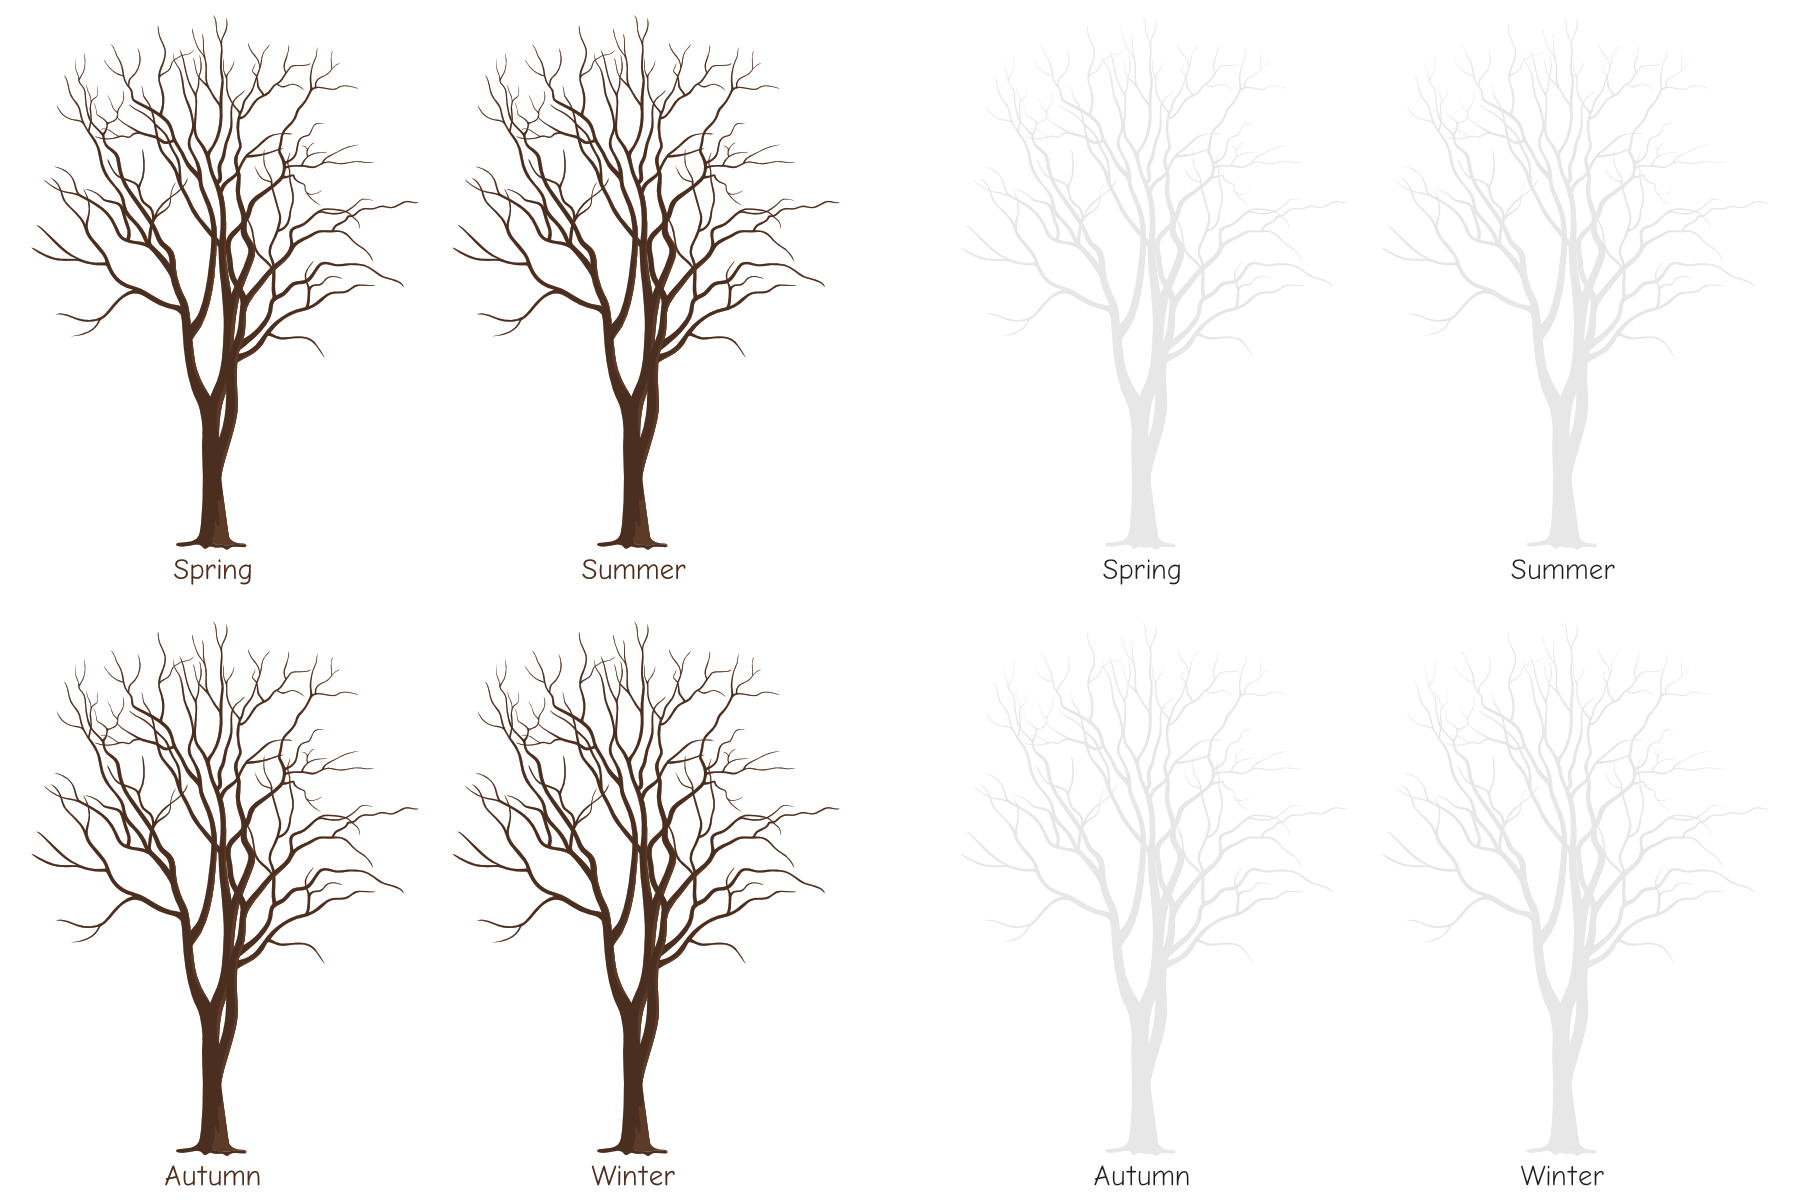 realistic tree template for drawing the four seasons: spring summer autumn winter